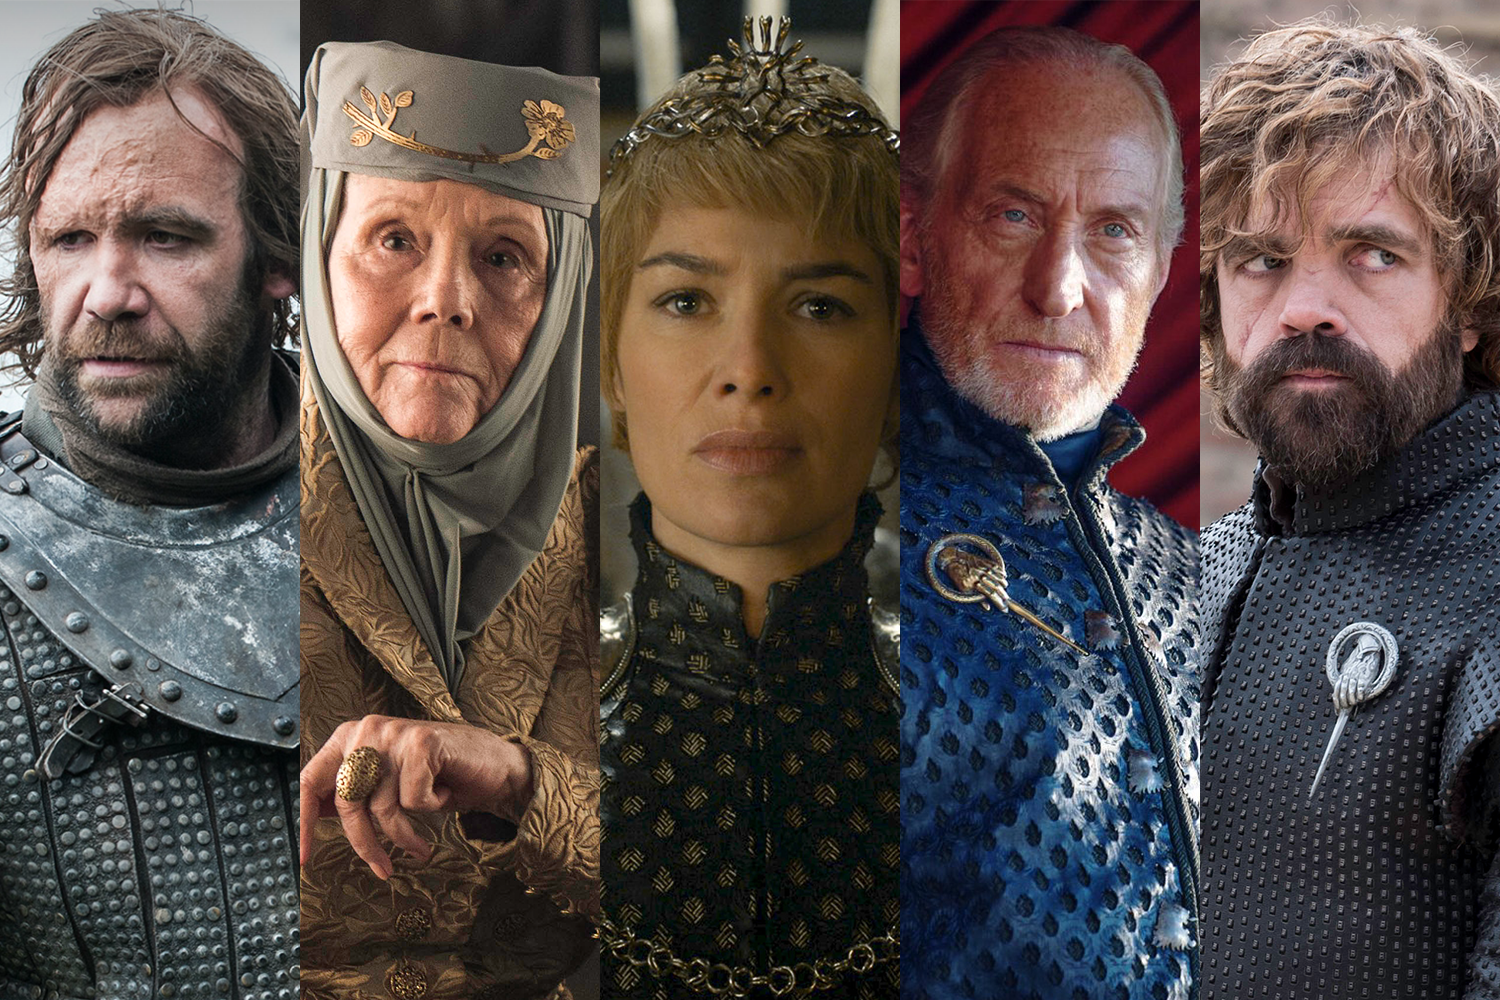 The 101 Best Insults From Game of Thrones, Ranked - InsideHook